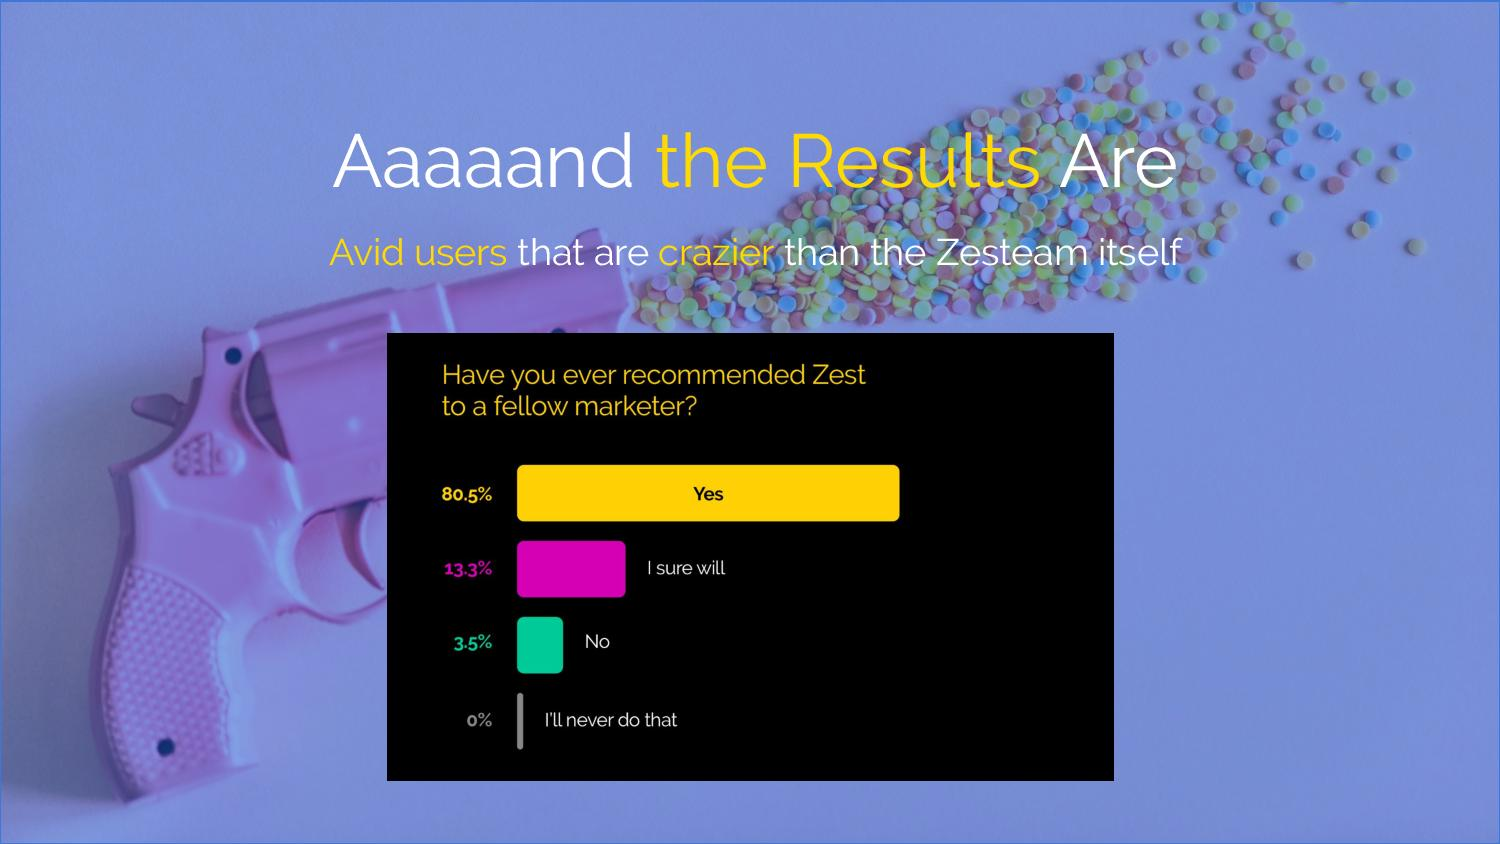 """Aaaand the results are: avid users that are crazier than the Zesteam itself""  [Image: Bar graph with results to question, ""Have you ever recommended Zest to a fellow marketer?"" 80.5% Yes; 13.3% I sure will; 3.5% No; 0 I'll never do that]"